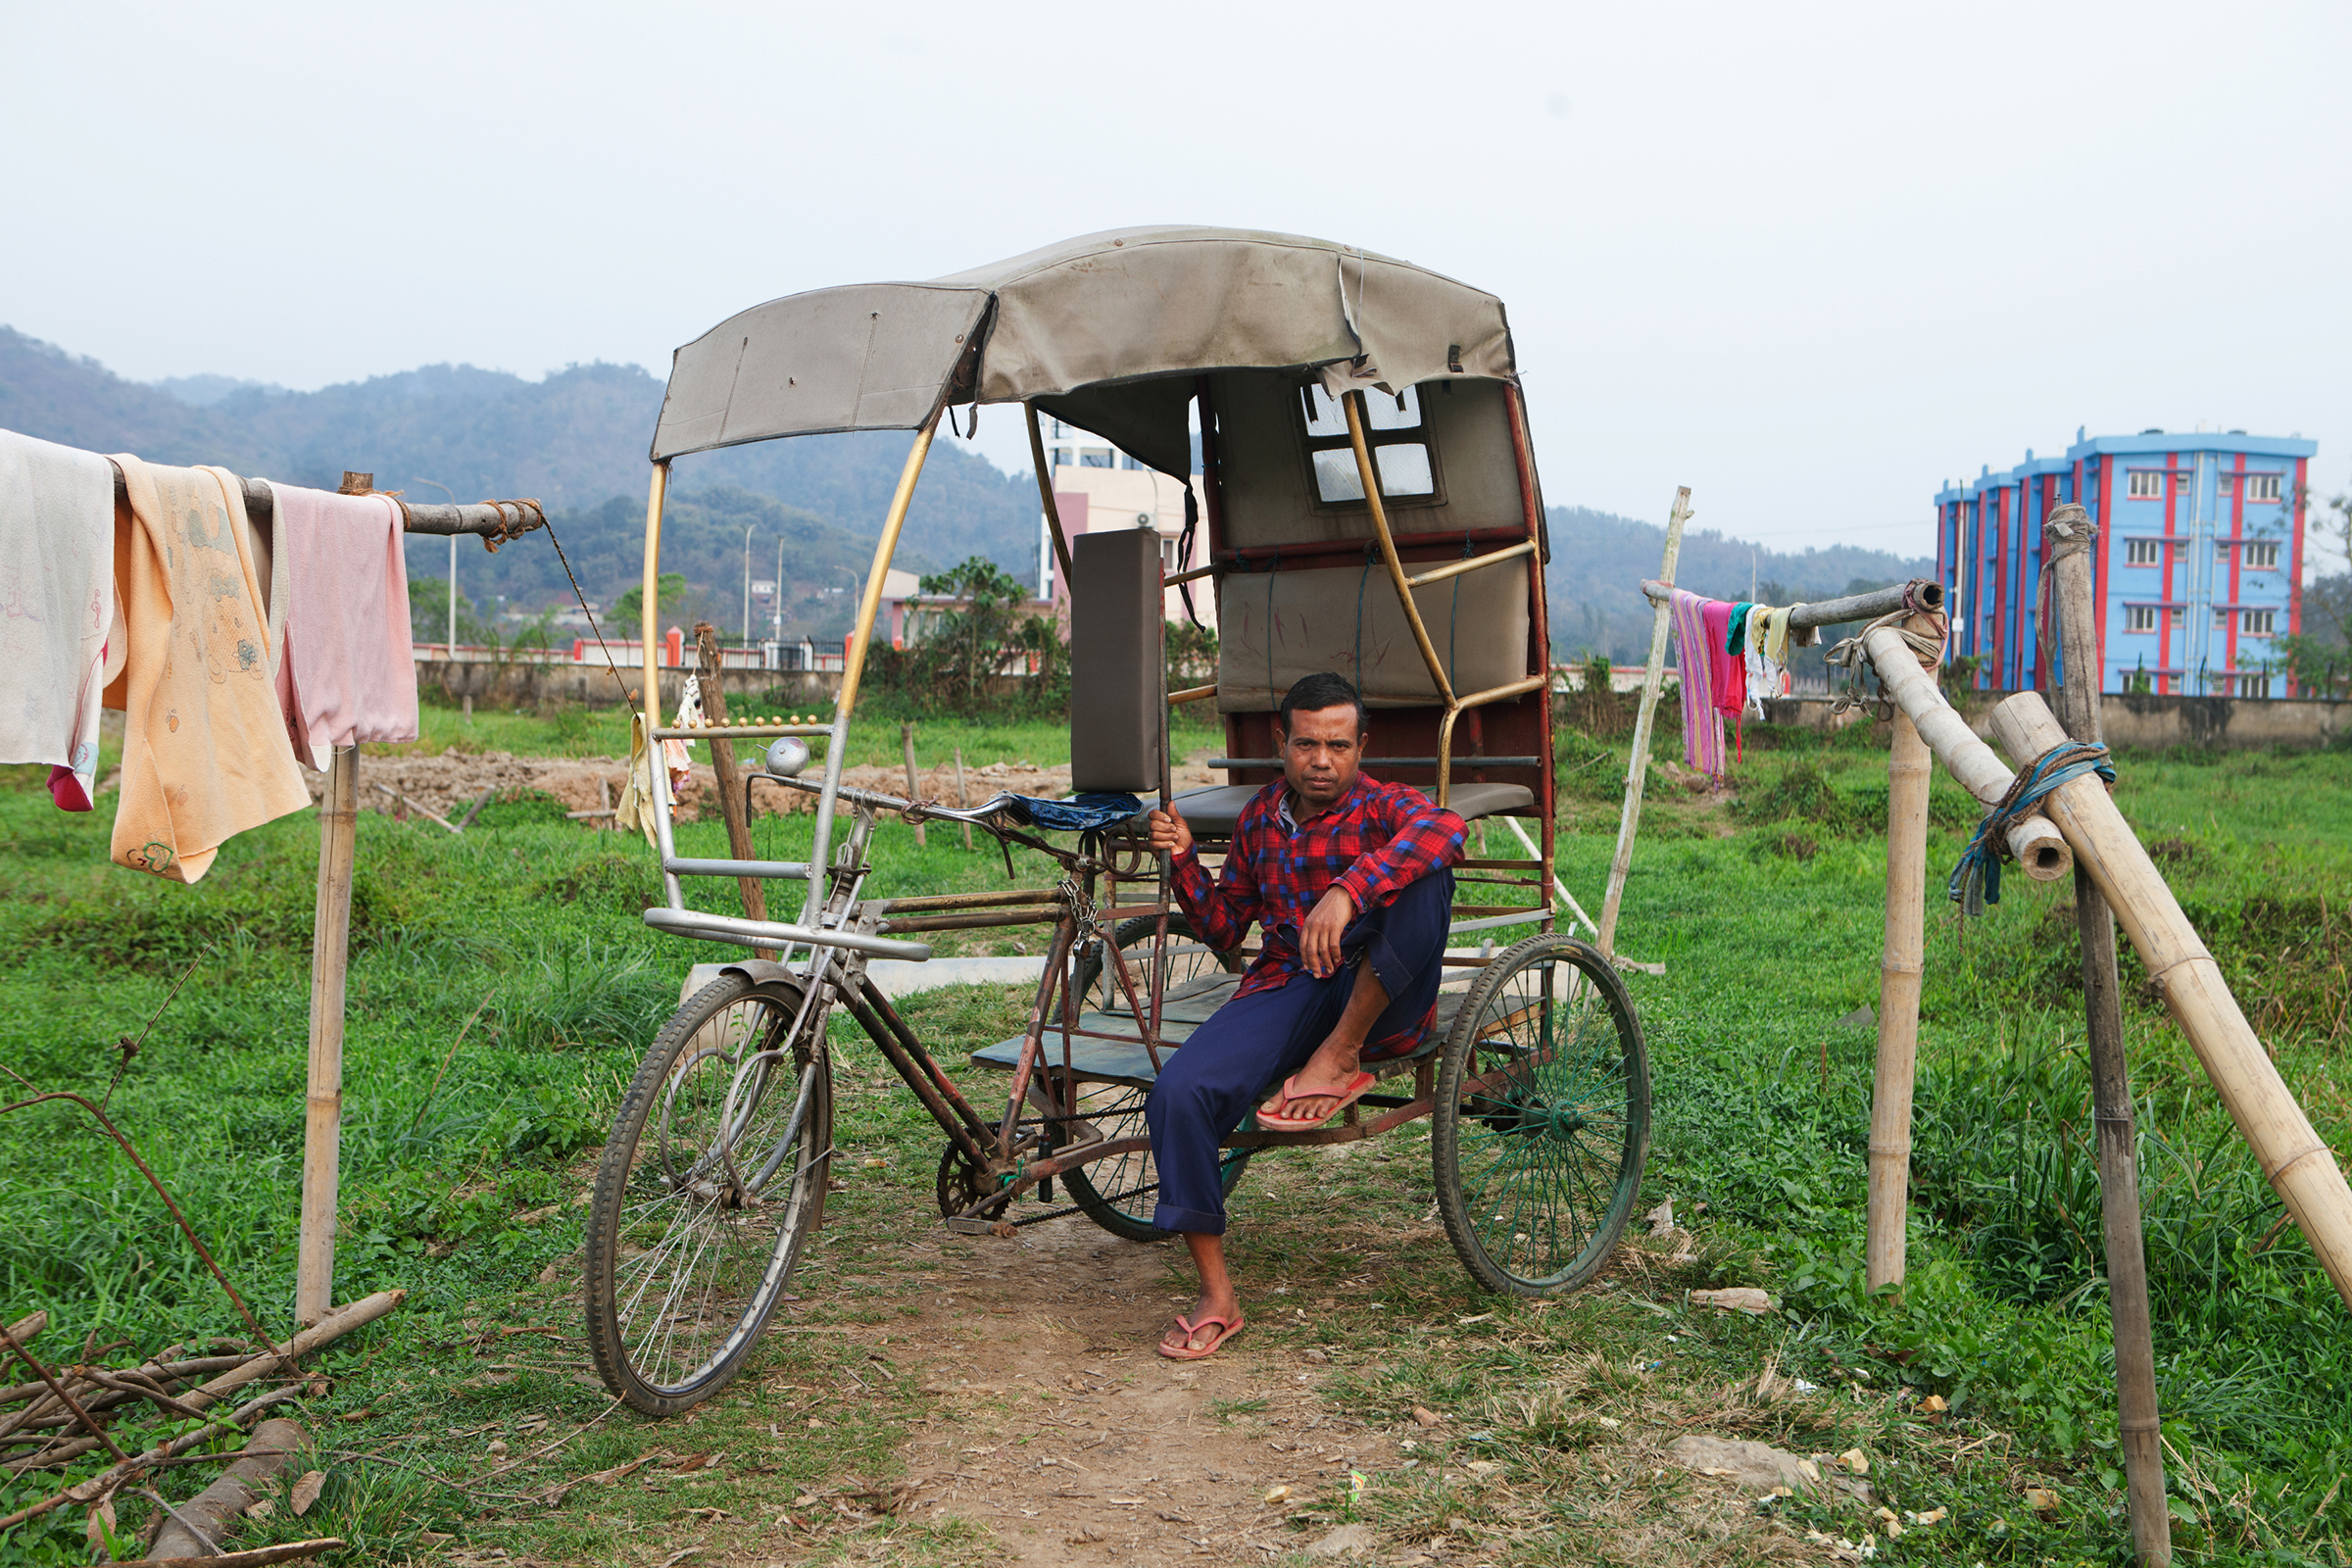 Nur Hussein, who was imprisoned and separated from his family for a year and a half before winning his citizenship case, rests on his rickshaw in a field adjacent to his home